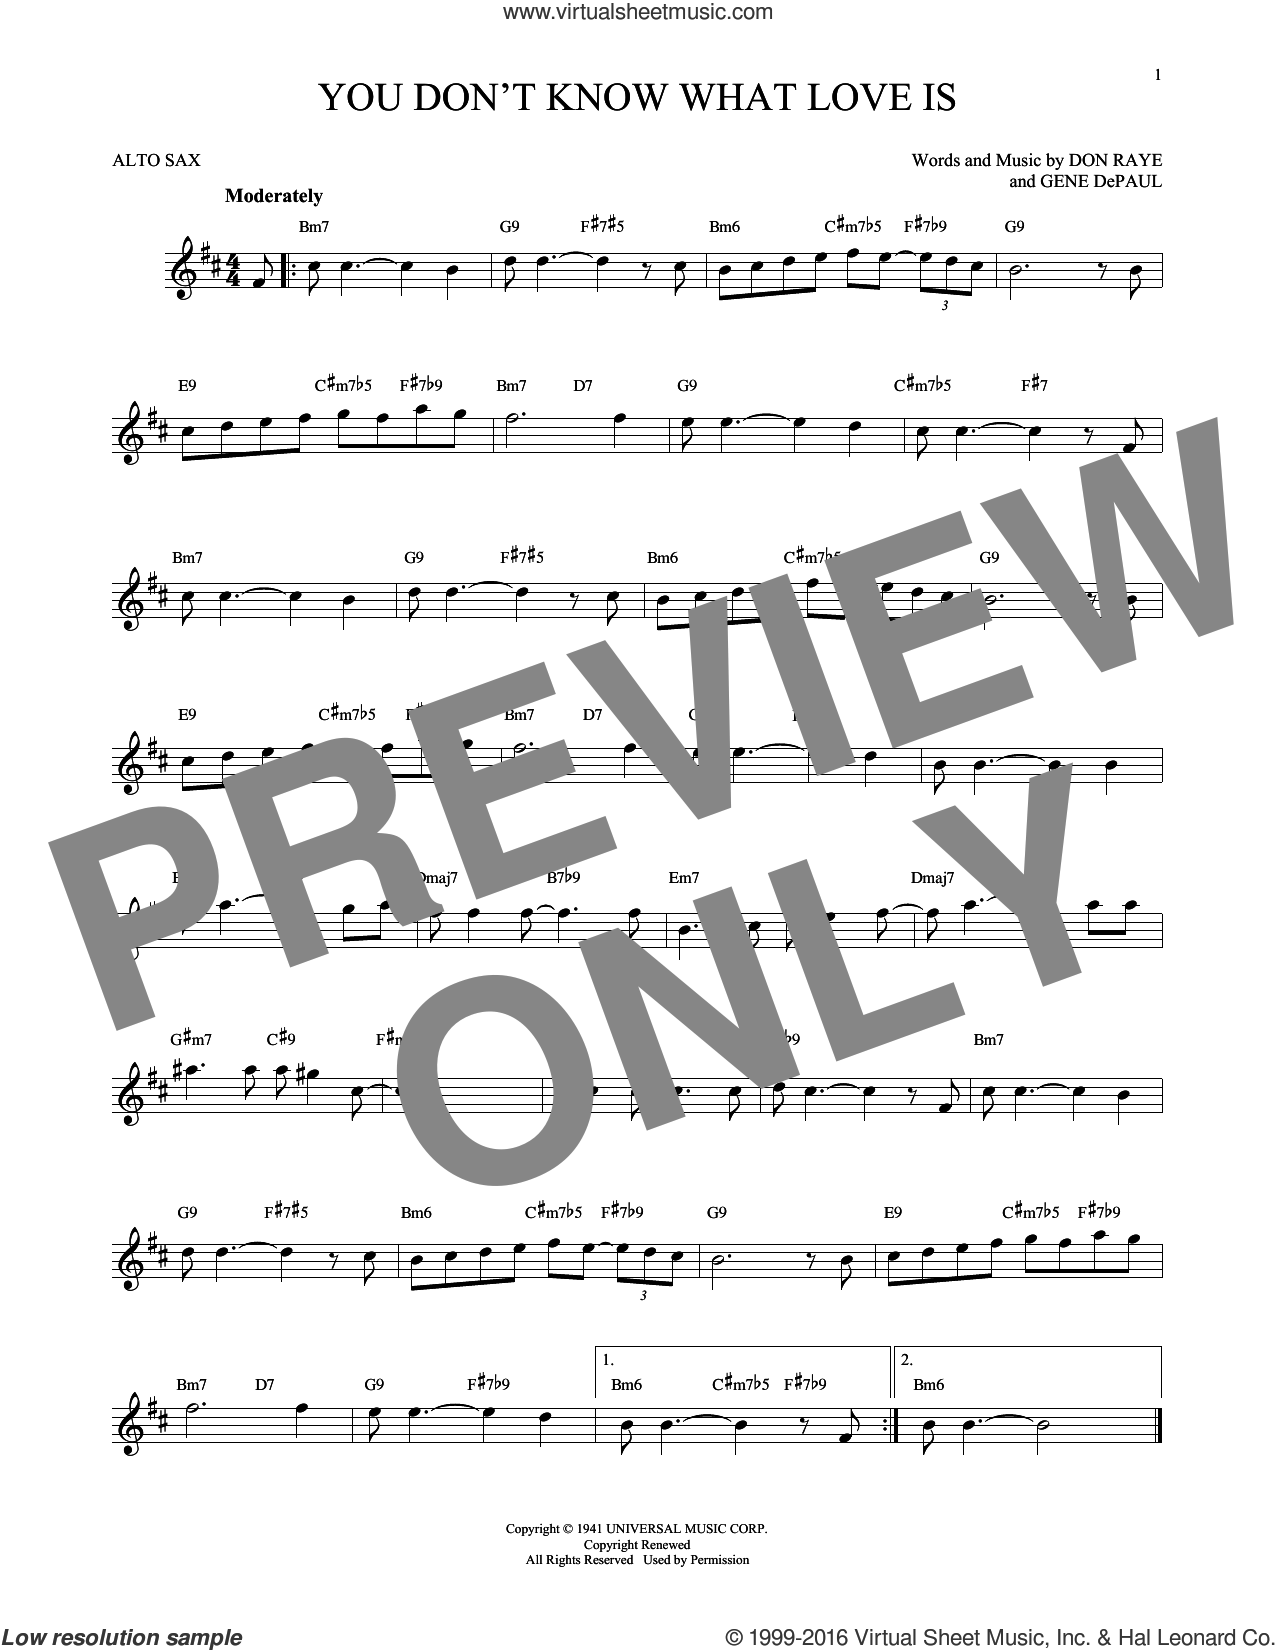 You Don't Know What Love Is sheet music for alto saxophone solo by Don Raye, Carol Bruce and Gene DePaul, intermediate skill level